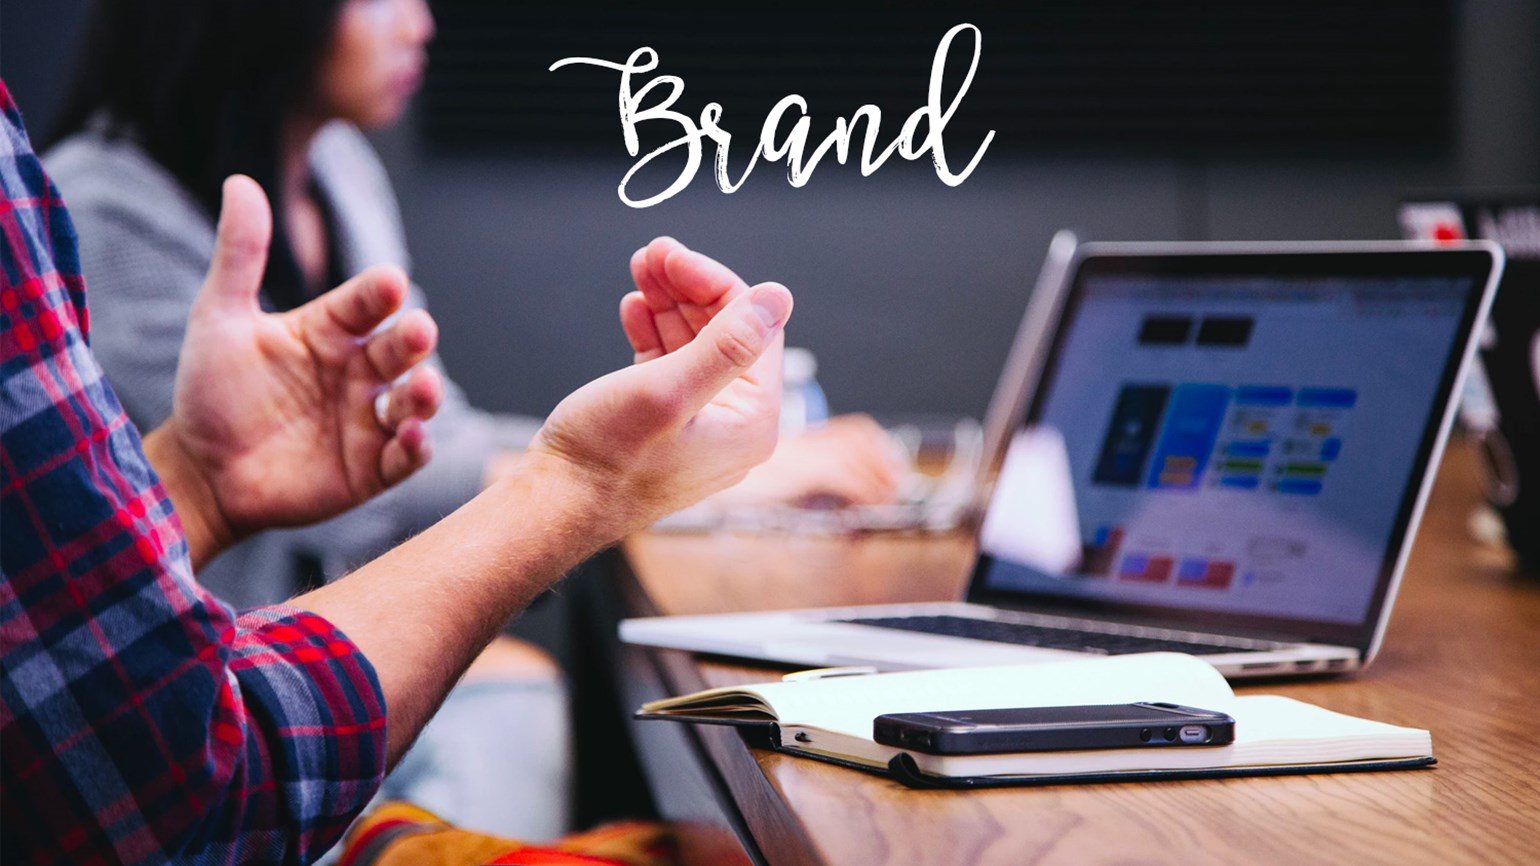 Branding Your Business for Success